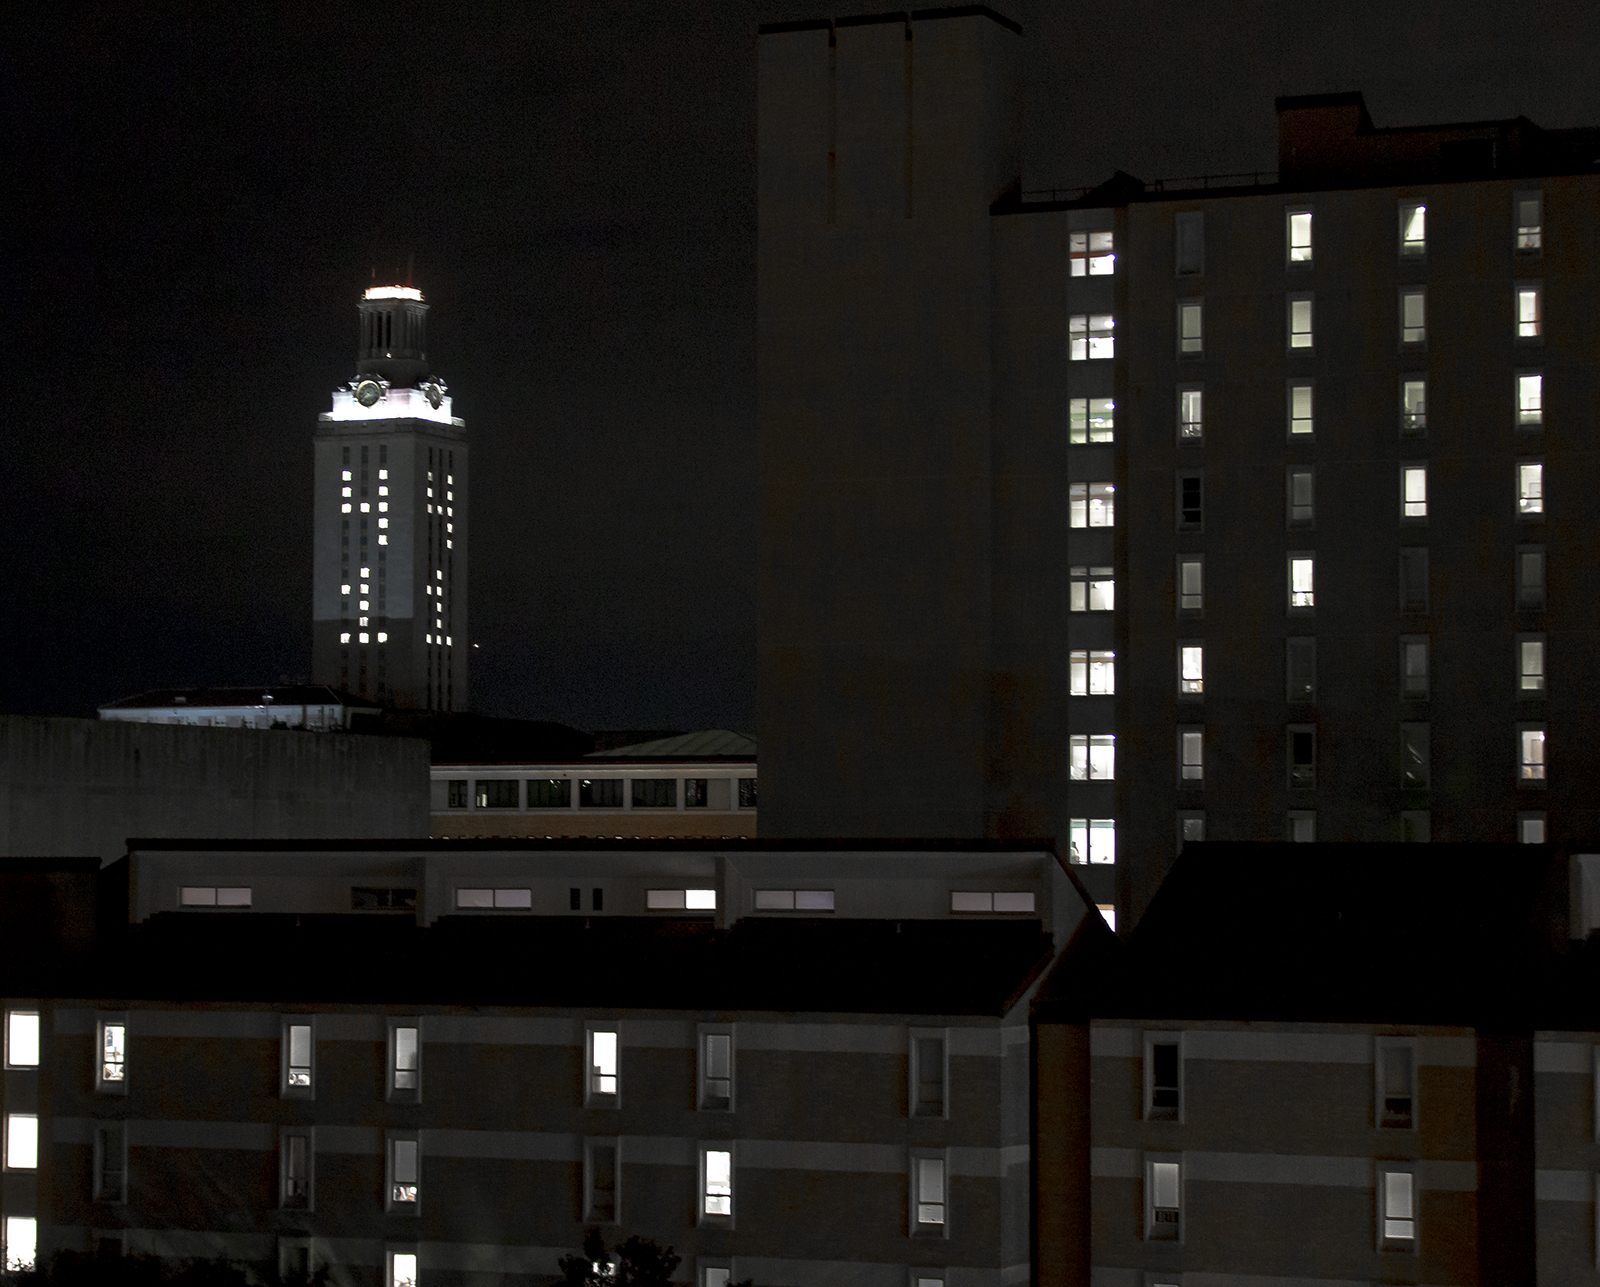 The University of Texas at Austin tower is lit